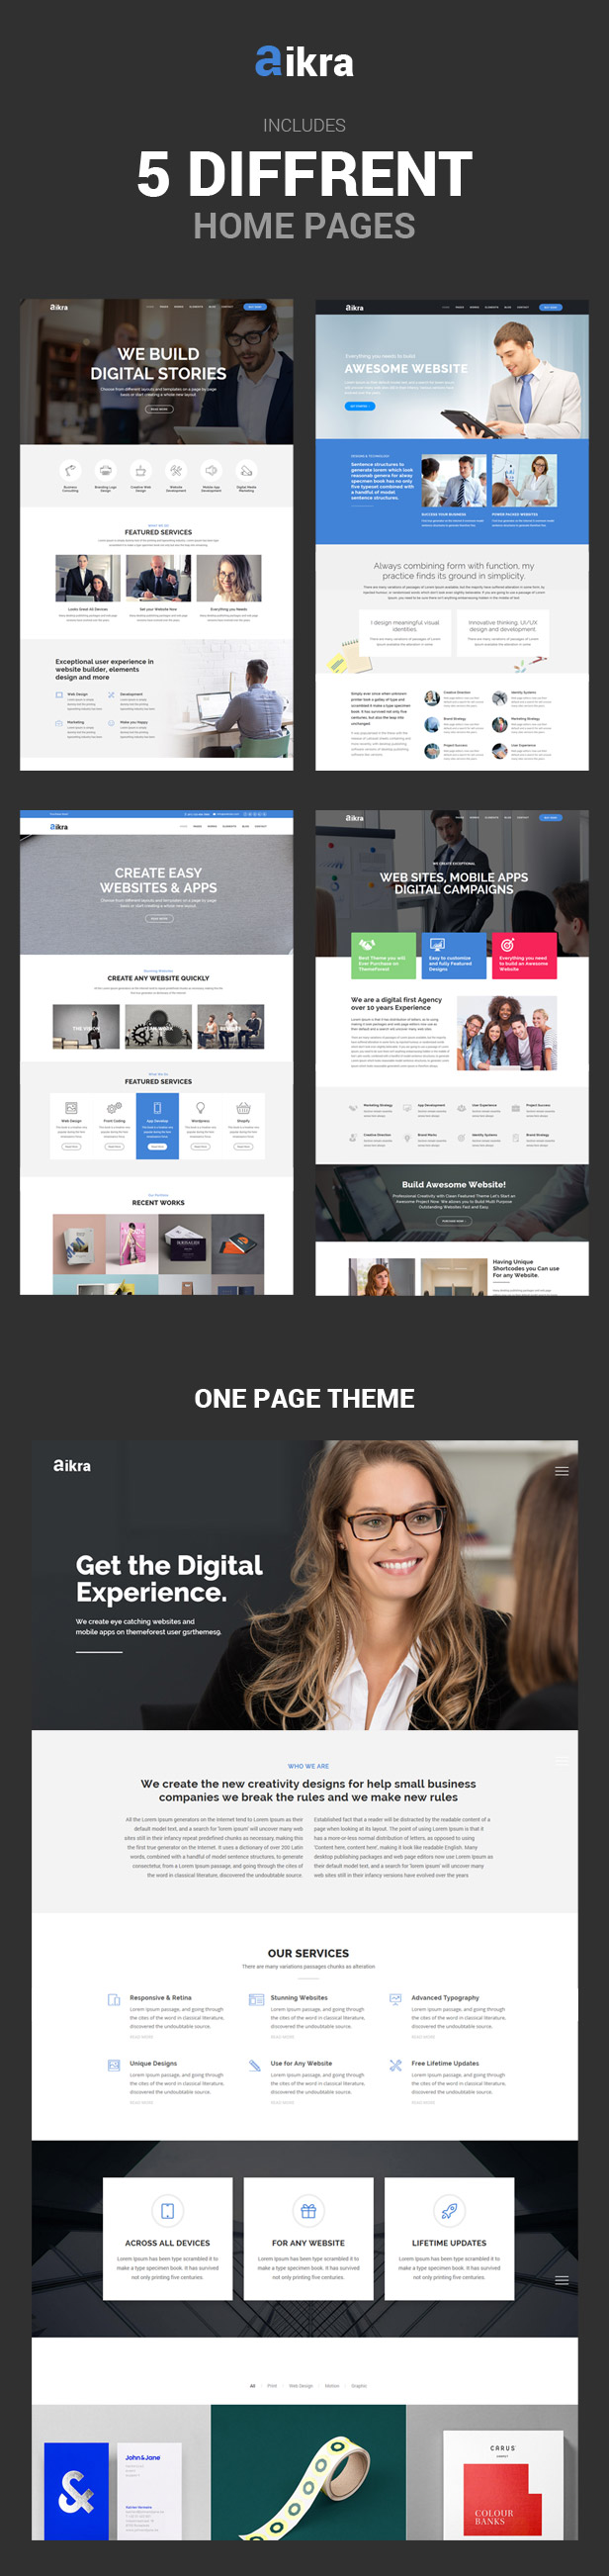 Aikra - Multipurpose Html5 Website Template - 1